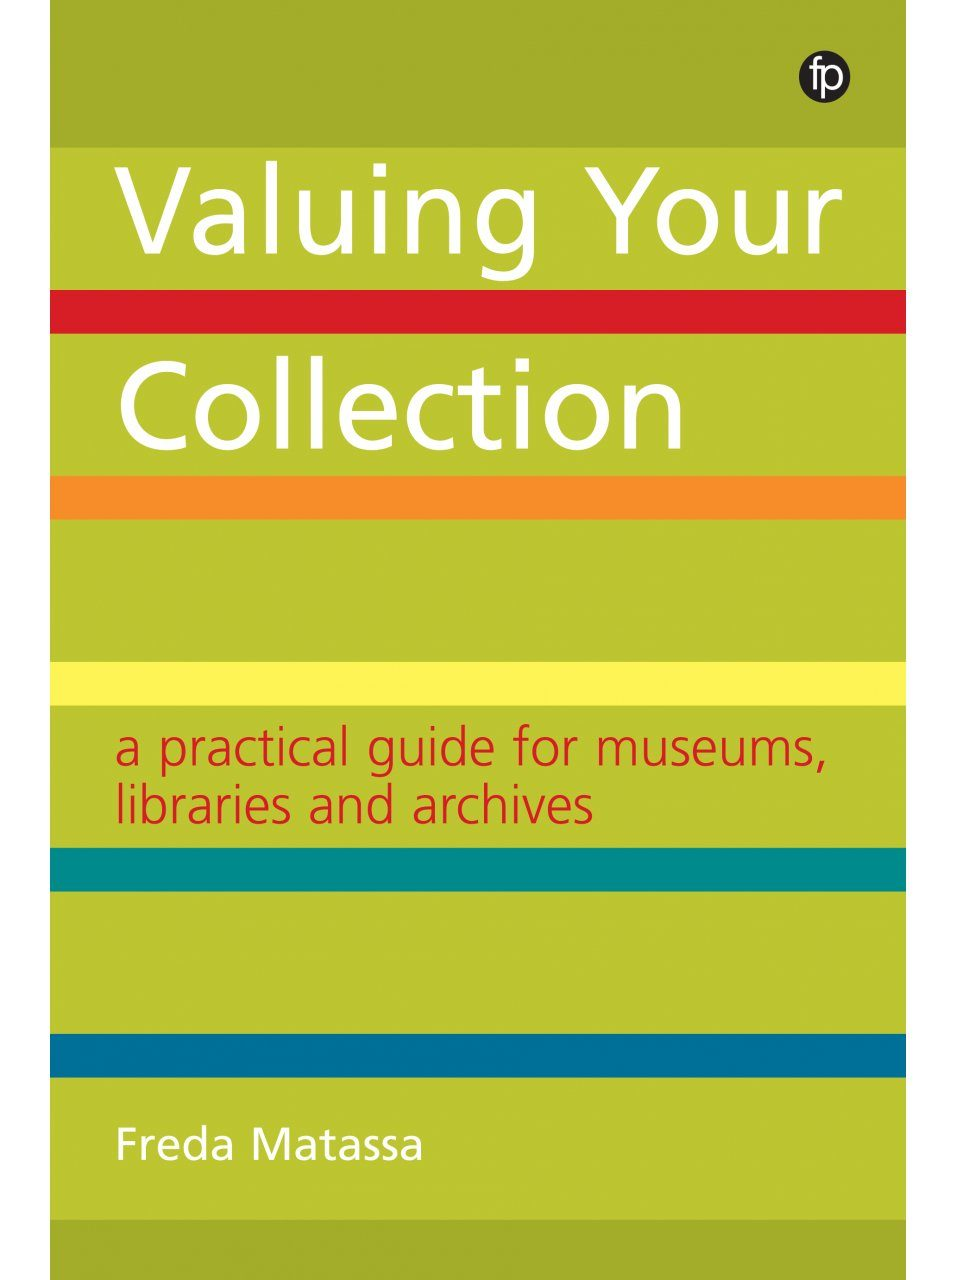 Valuing Your Collection